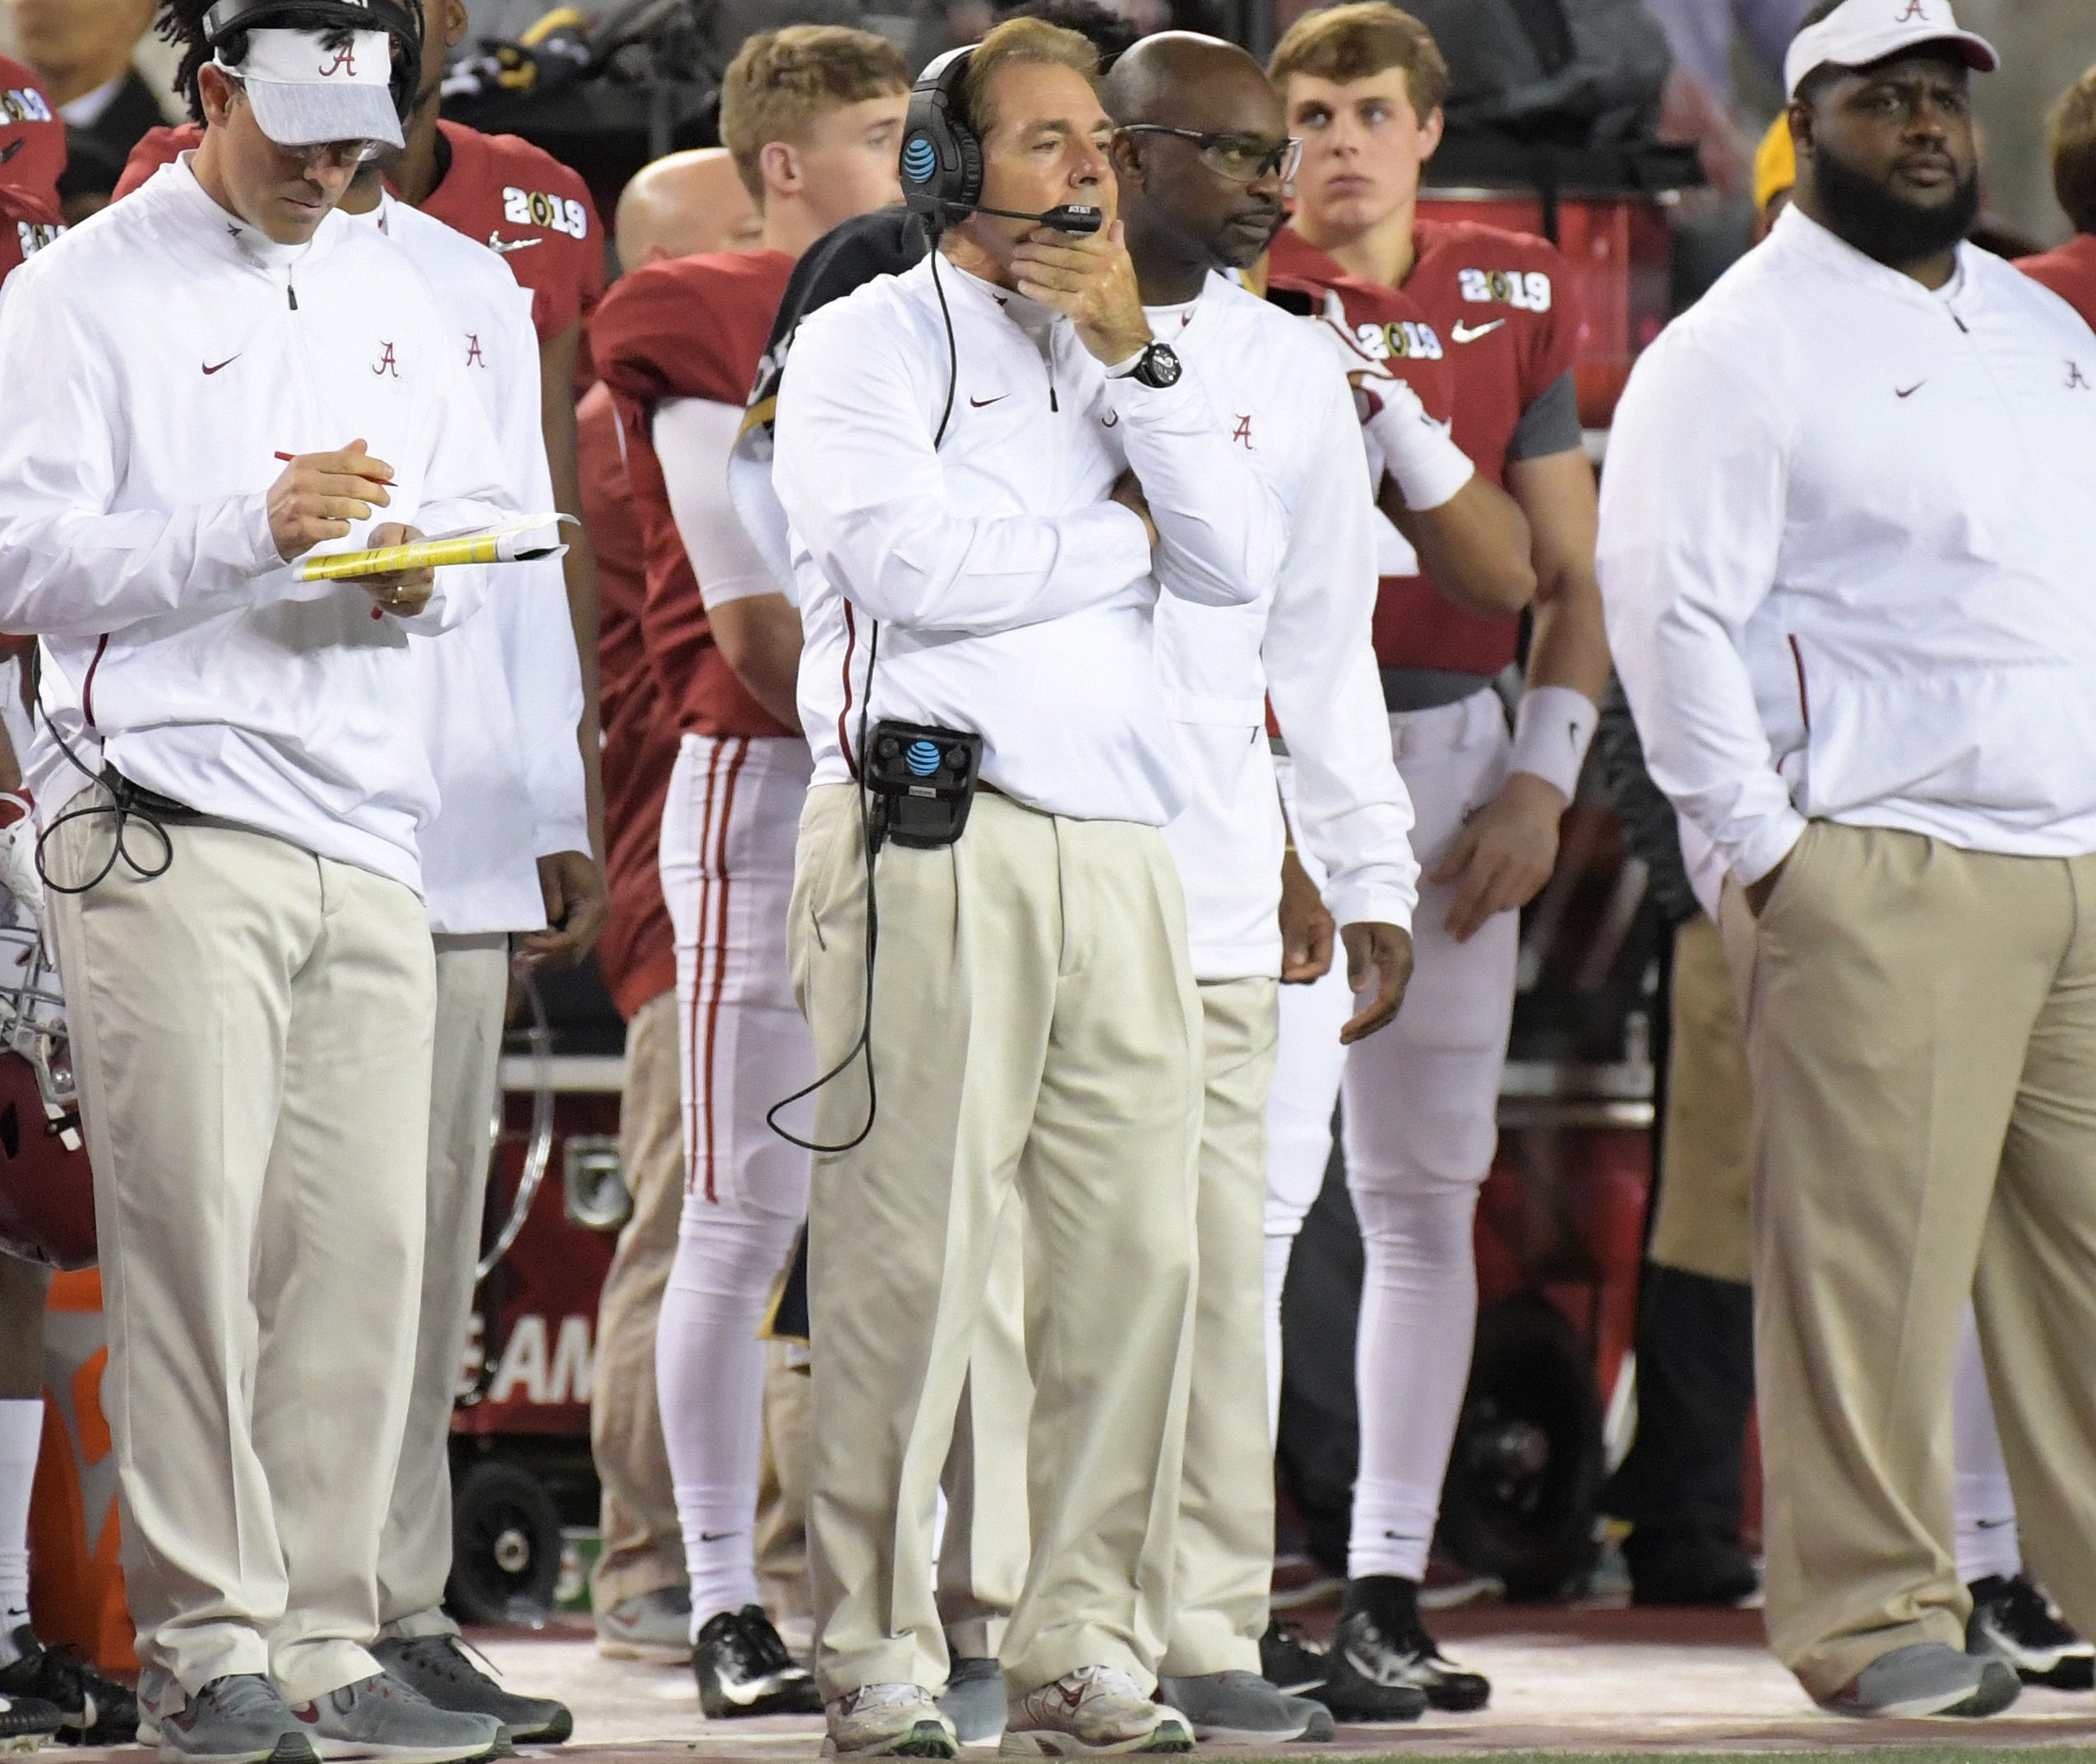 Alabama coach Nick Saban stands on the sideline during the College Football Playoff championship game at Levi's Stadium.